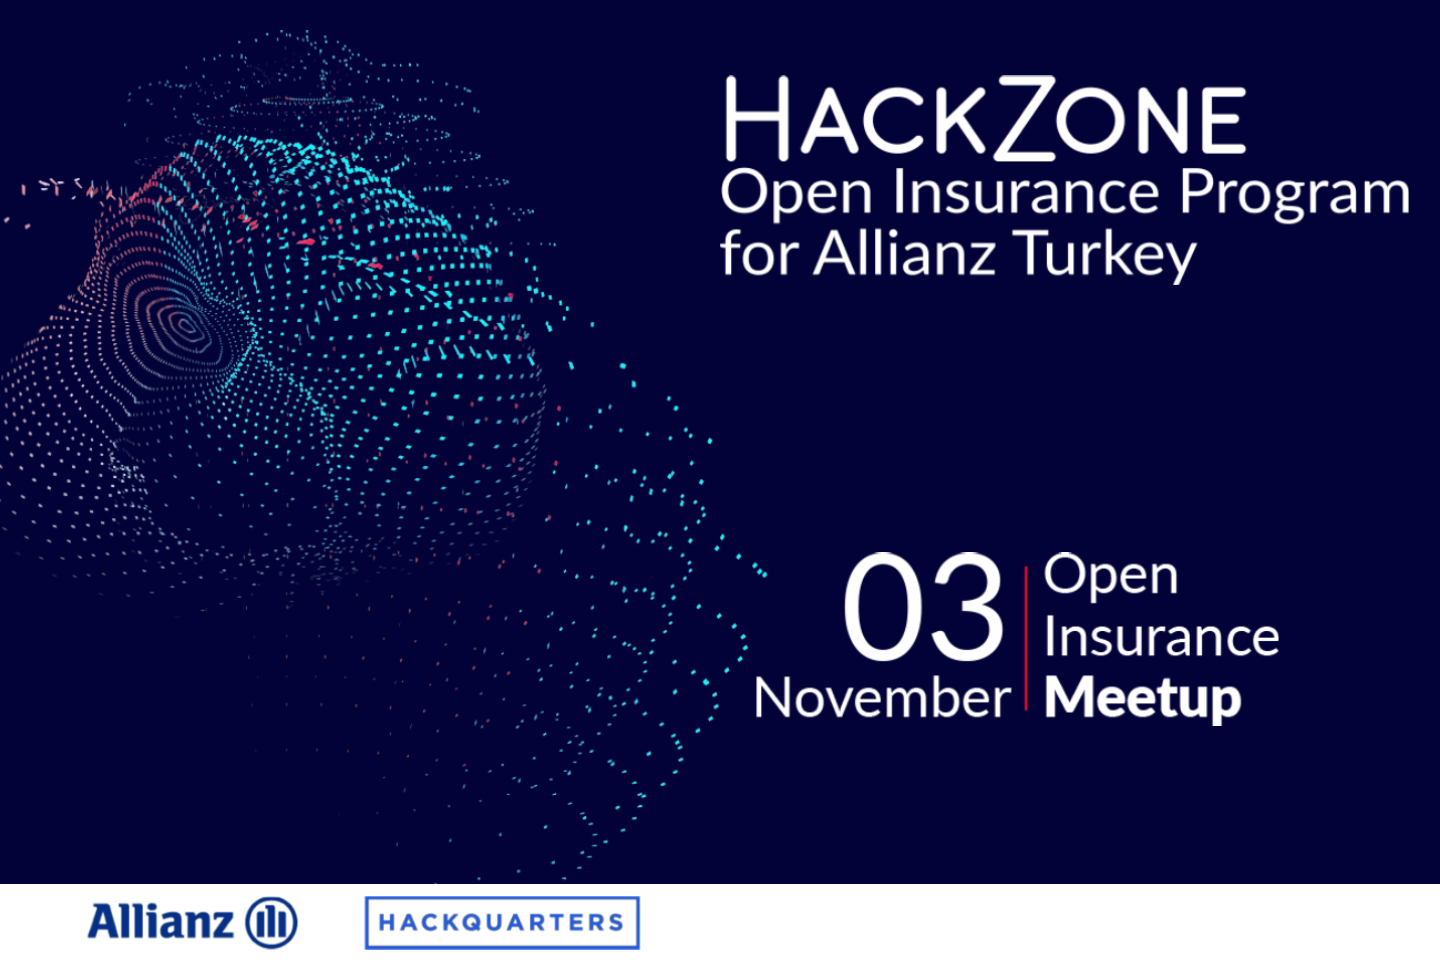 Open Insurance Meetup held on 03 November 2020 is an online event aiming to announce #HackZone Open Insurance Program powered by Allianz Turkey and implemented by Hackquarters.